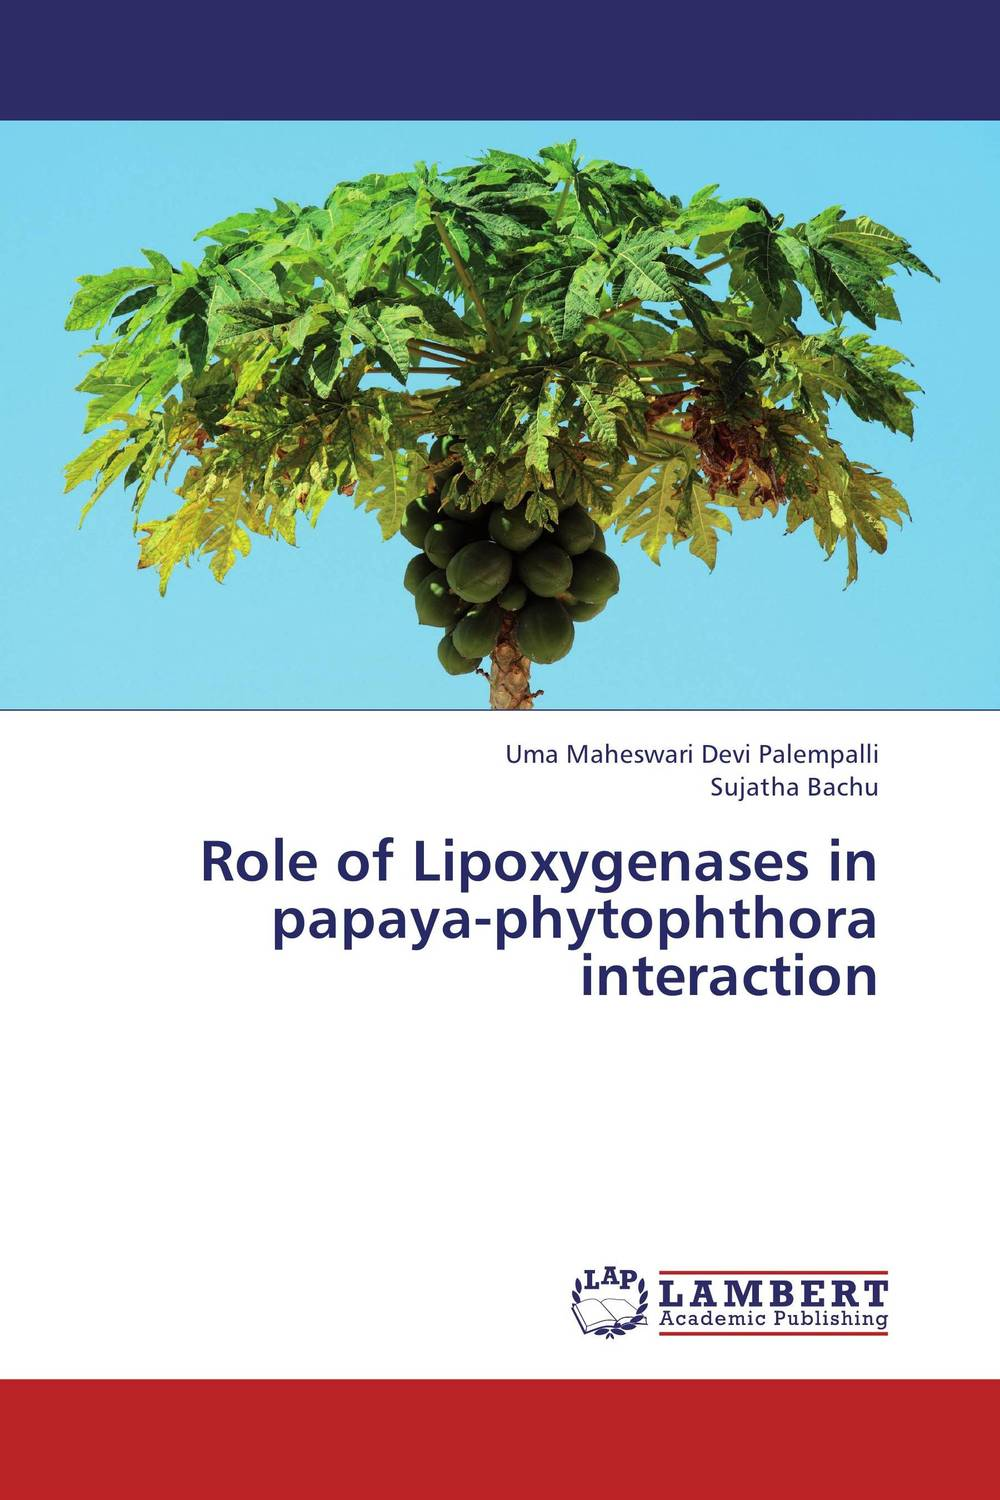 Role of Lipoxygenases in papaya-phytophthora interaction the role of evaluation as a mechanism for advancing principal practice